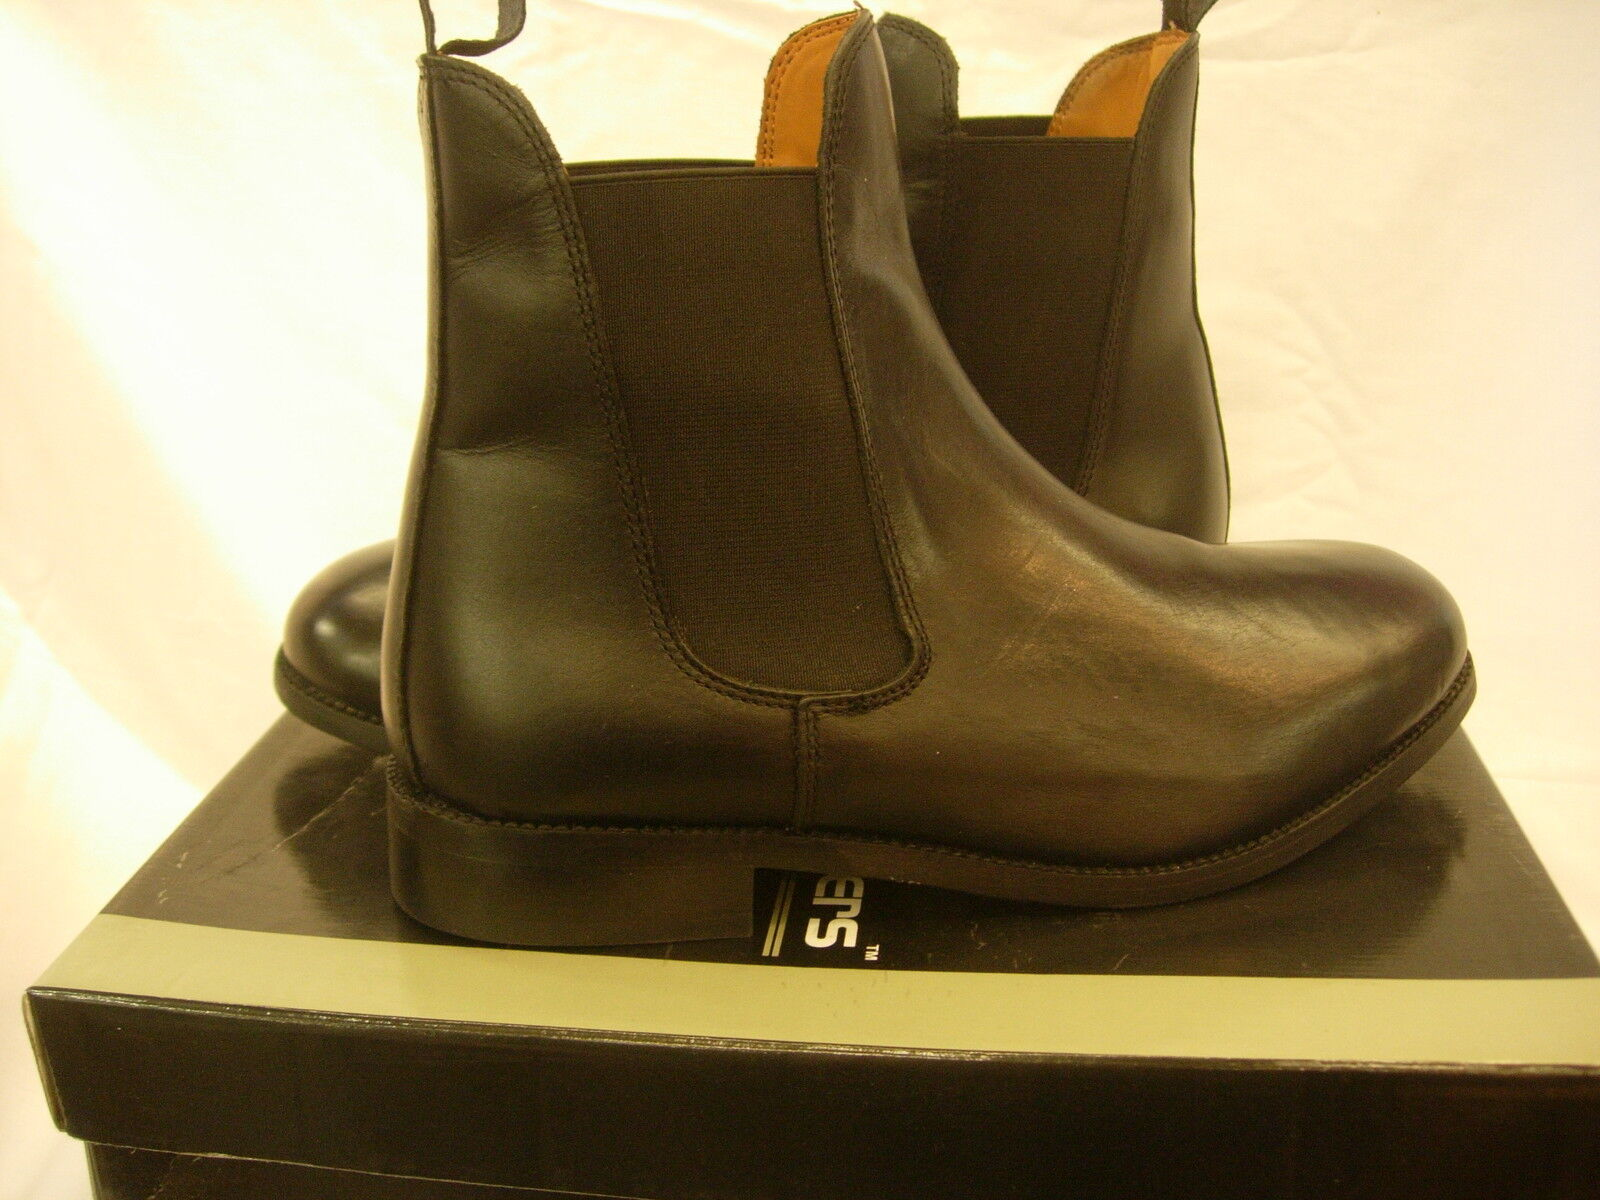 UNISEX BLACK LEATHER SLIP PULL ON RIDING HORSE RIDING ON JODHPUR CHELSEA EQUESTRIAN Stiefel 5d54c3